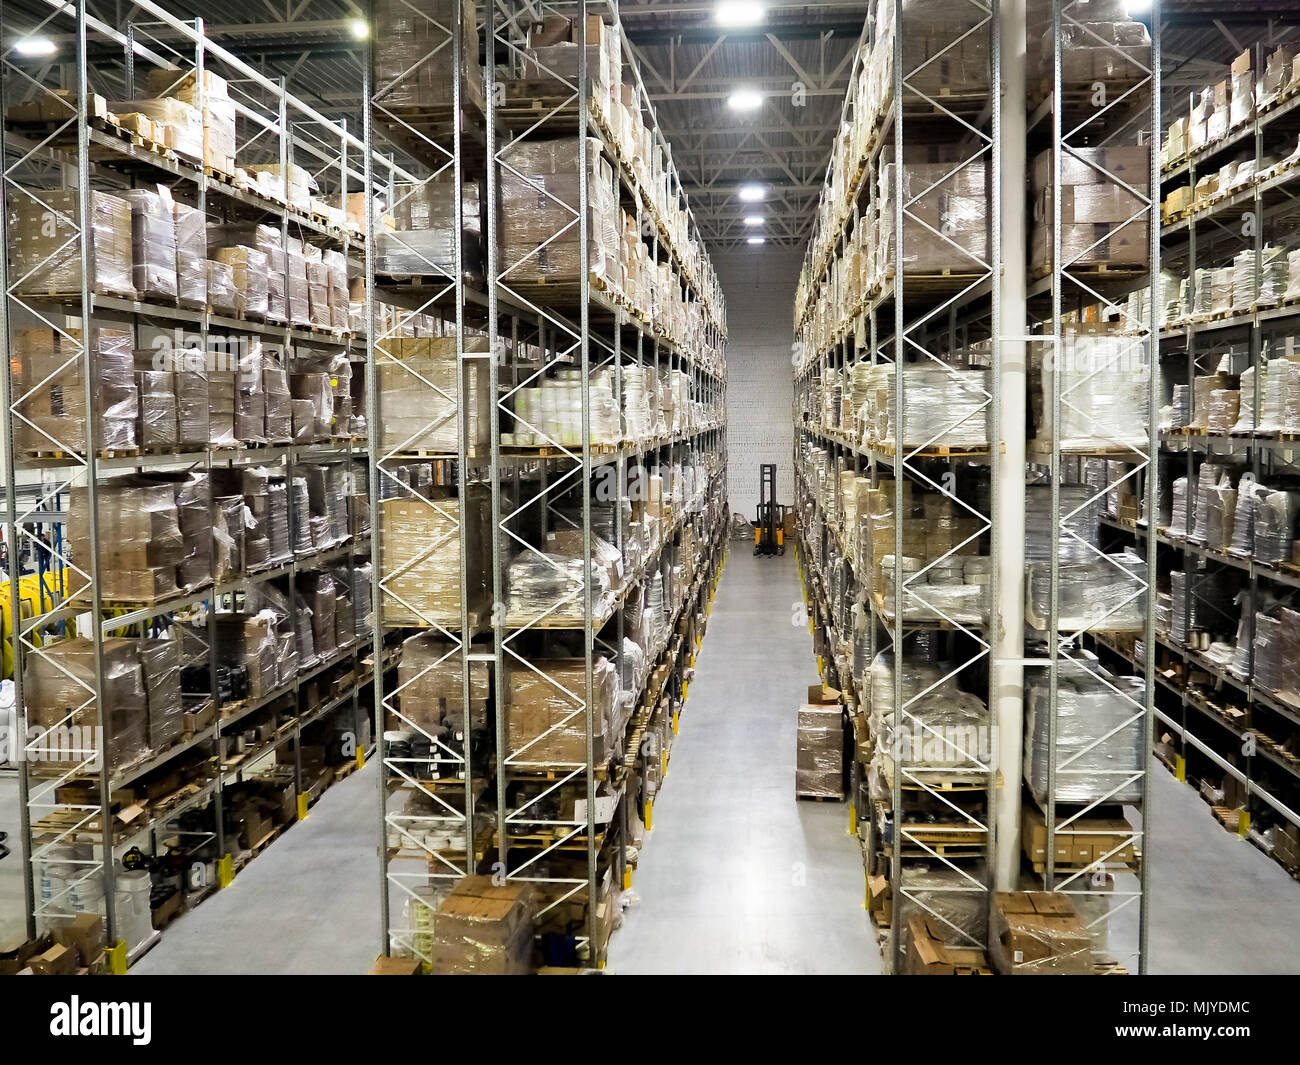 Large modern blurred warehouse industrial and logistics